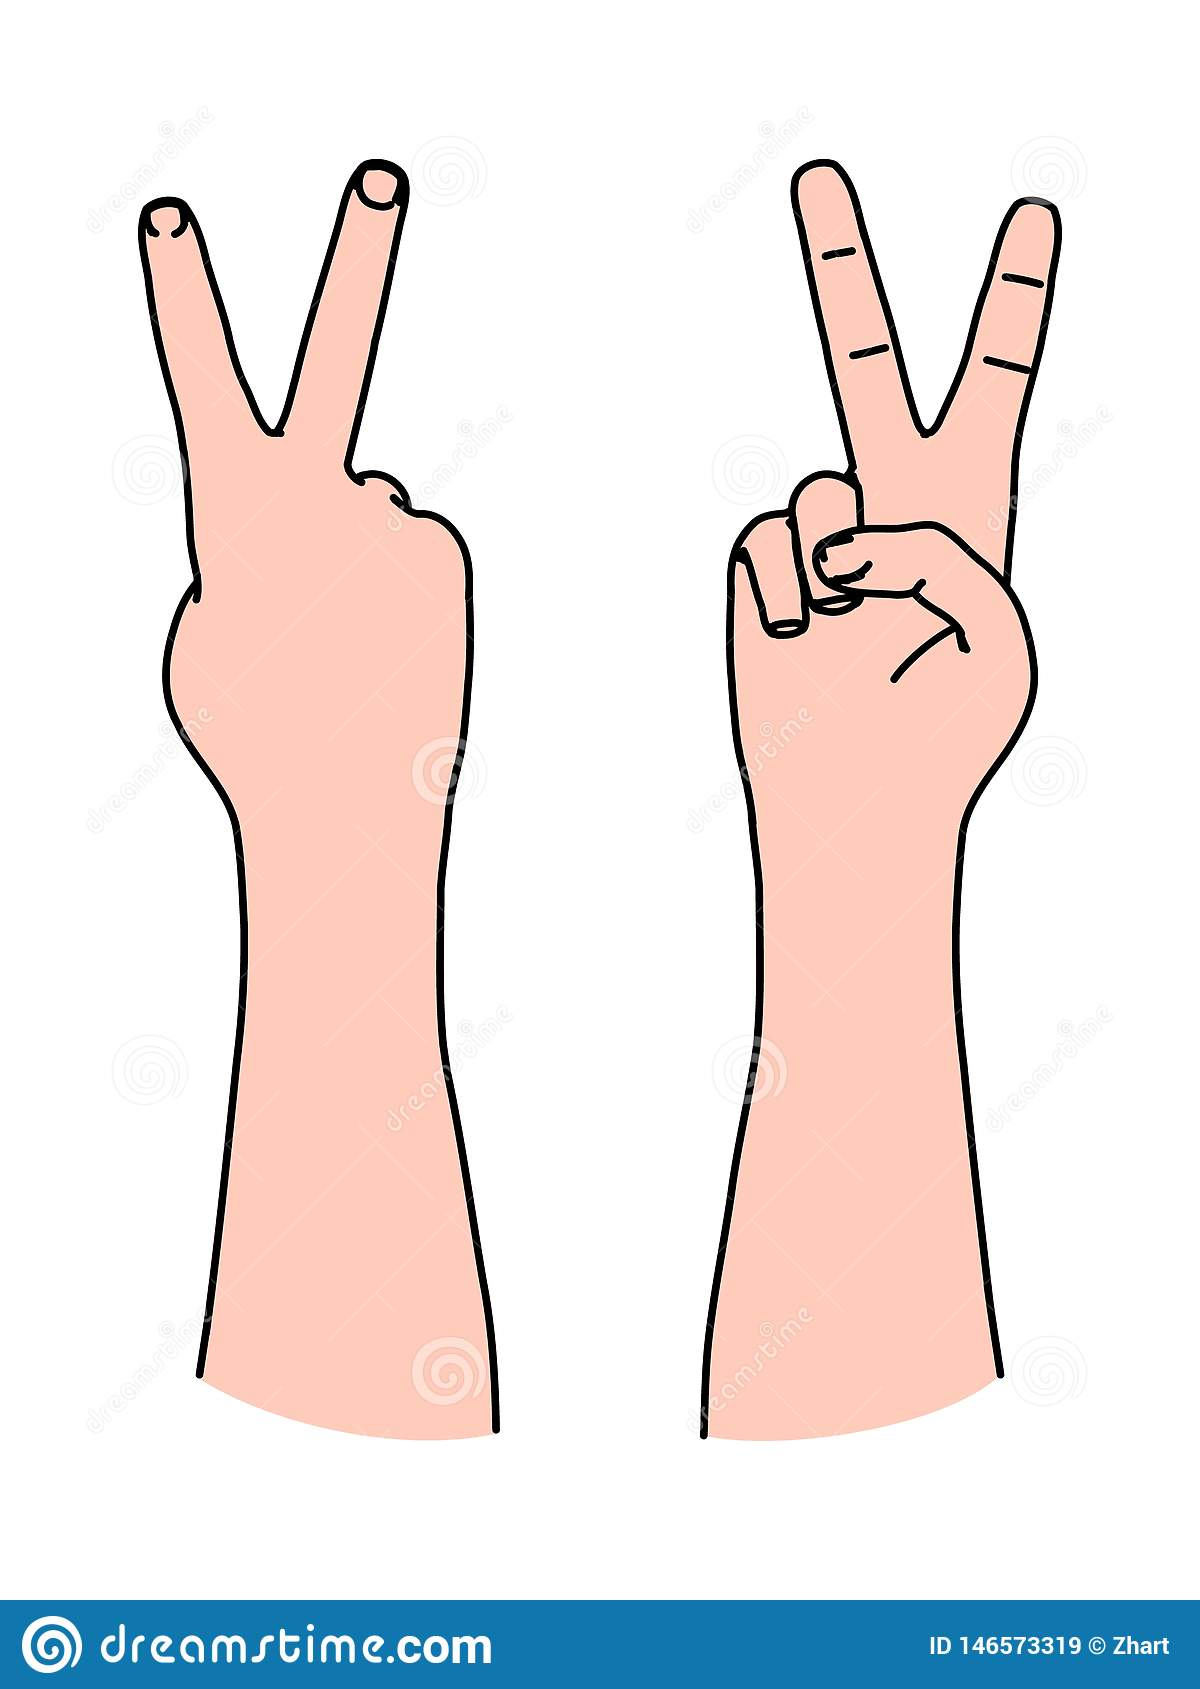 Letter V by two fingers as Victory symbol and sign of peace